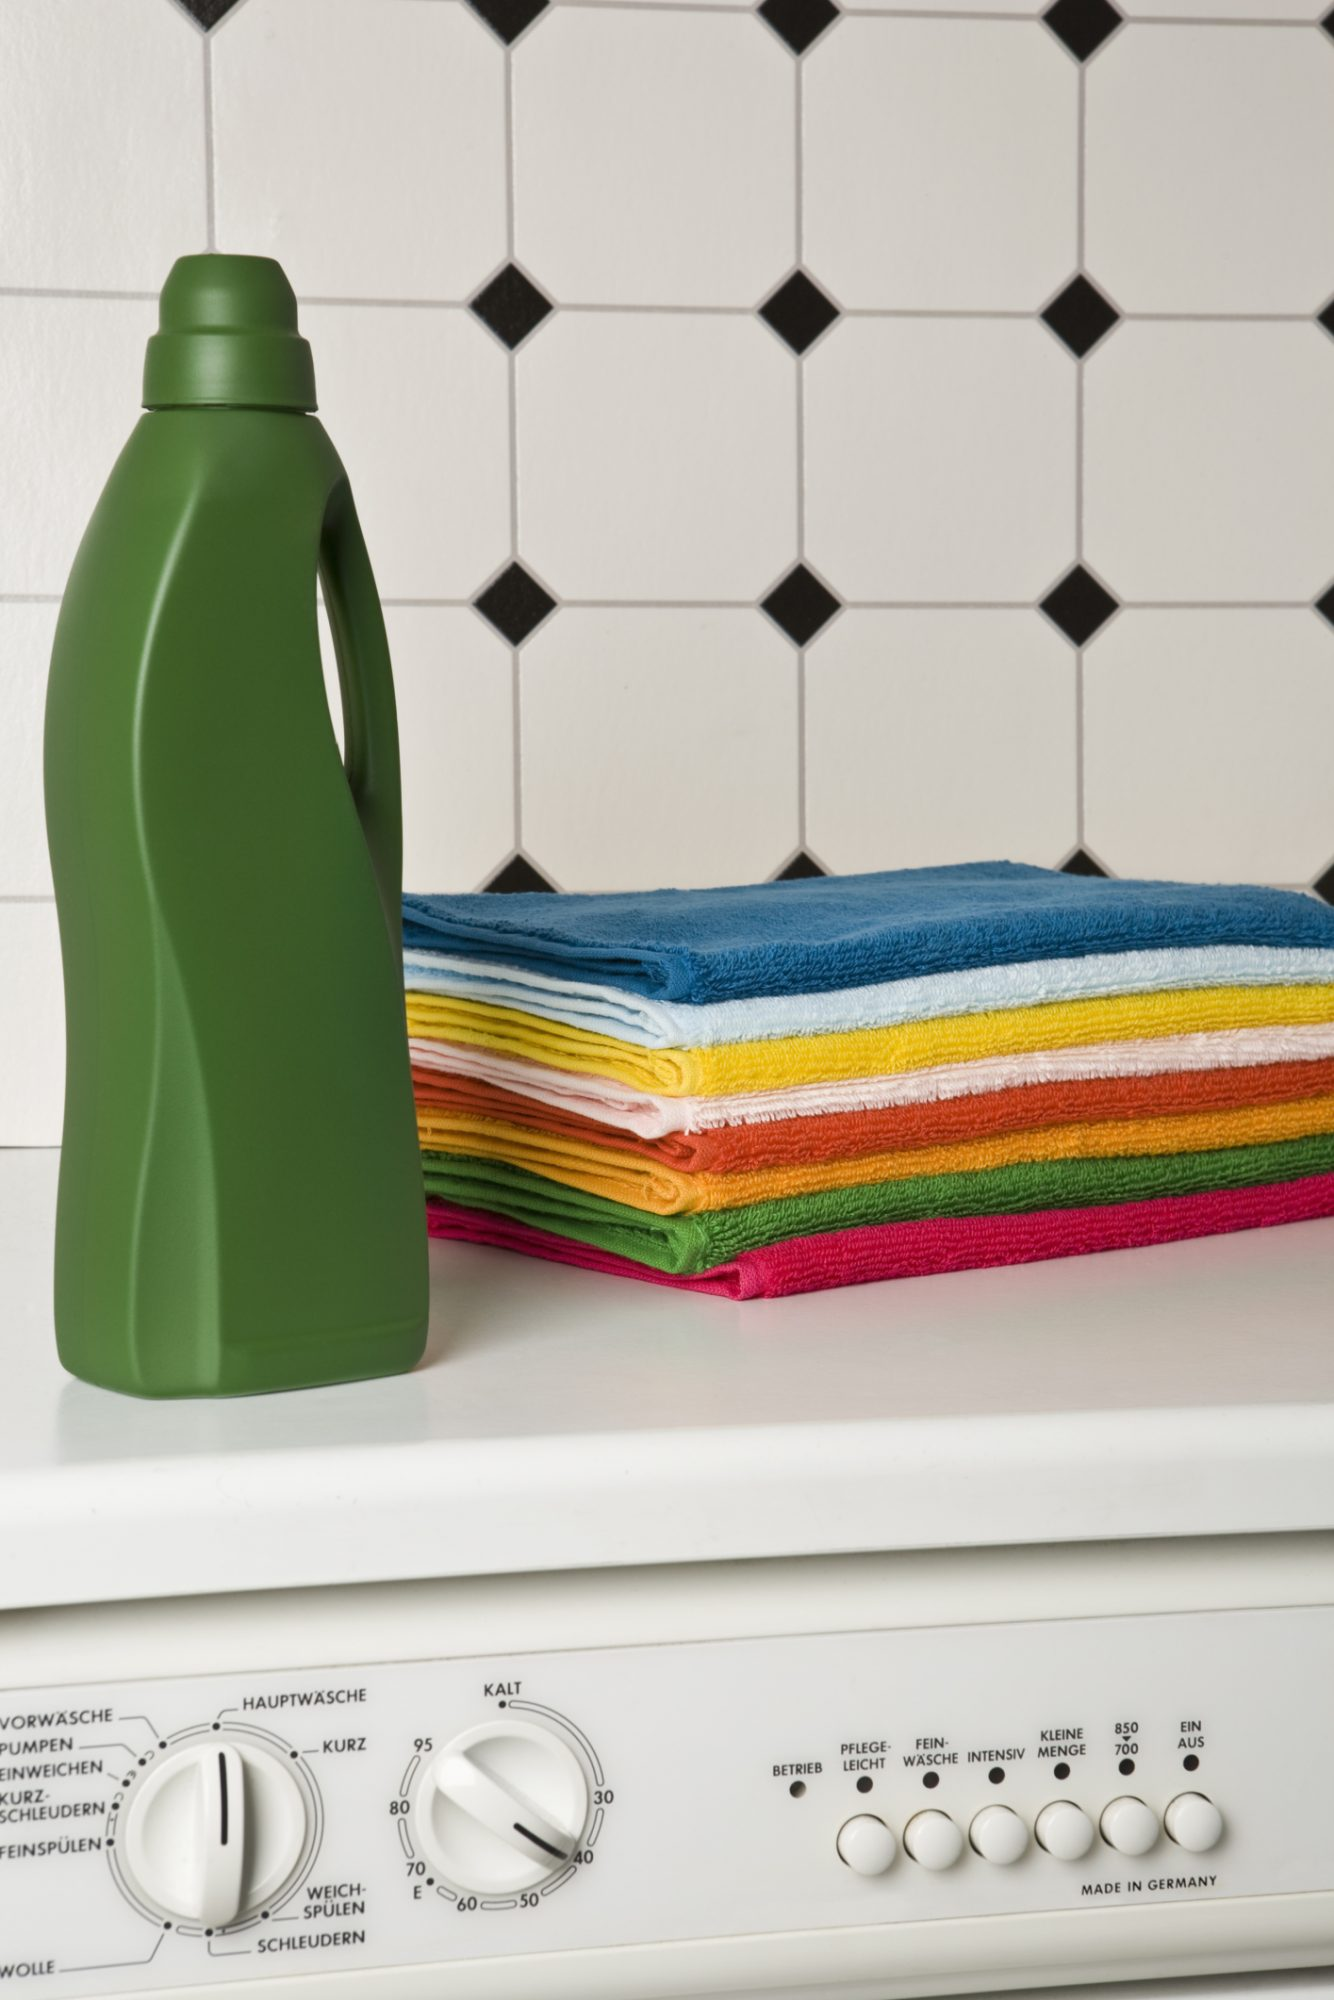 Colorful towels and green detergent bottle on top of washer